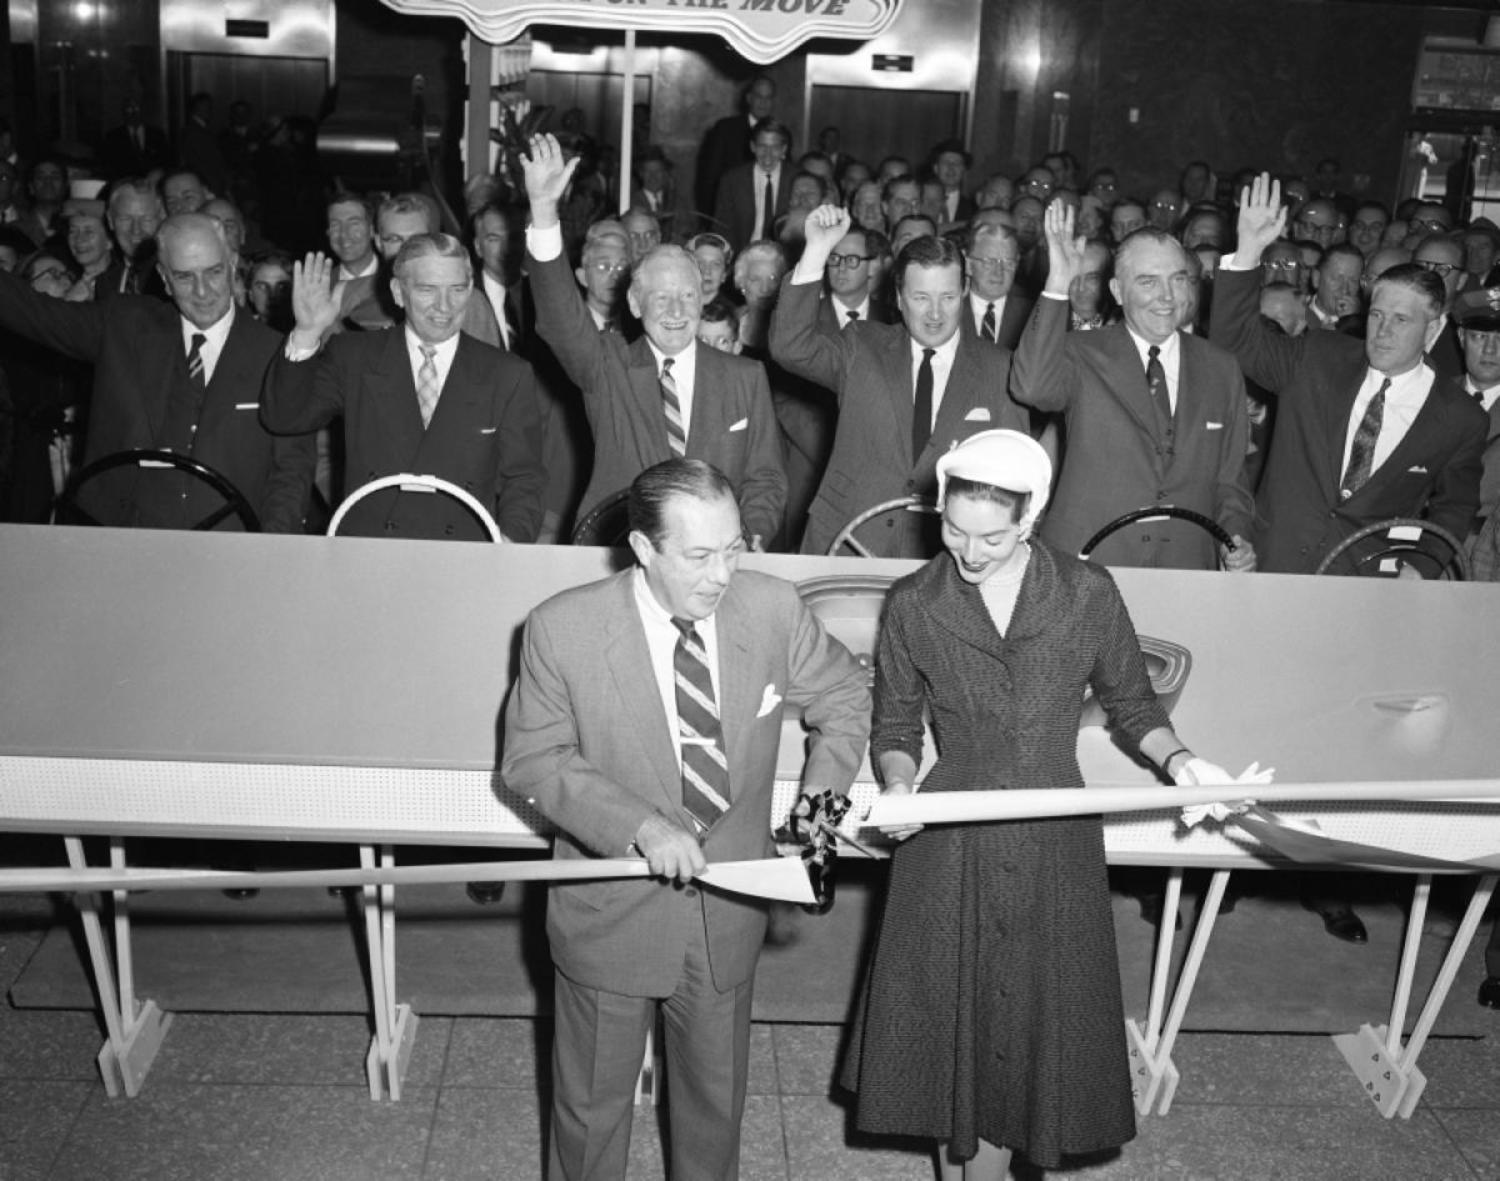 The ribbon is cut, let the show begin! New York Mayor, Robert Wagner, gets a little help from Lee Ann Meriwether, a former Miss America, to help usher in the 1957 auto show.